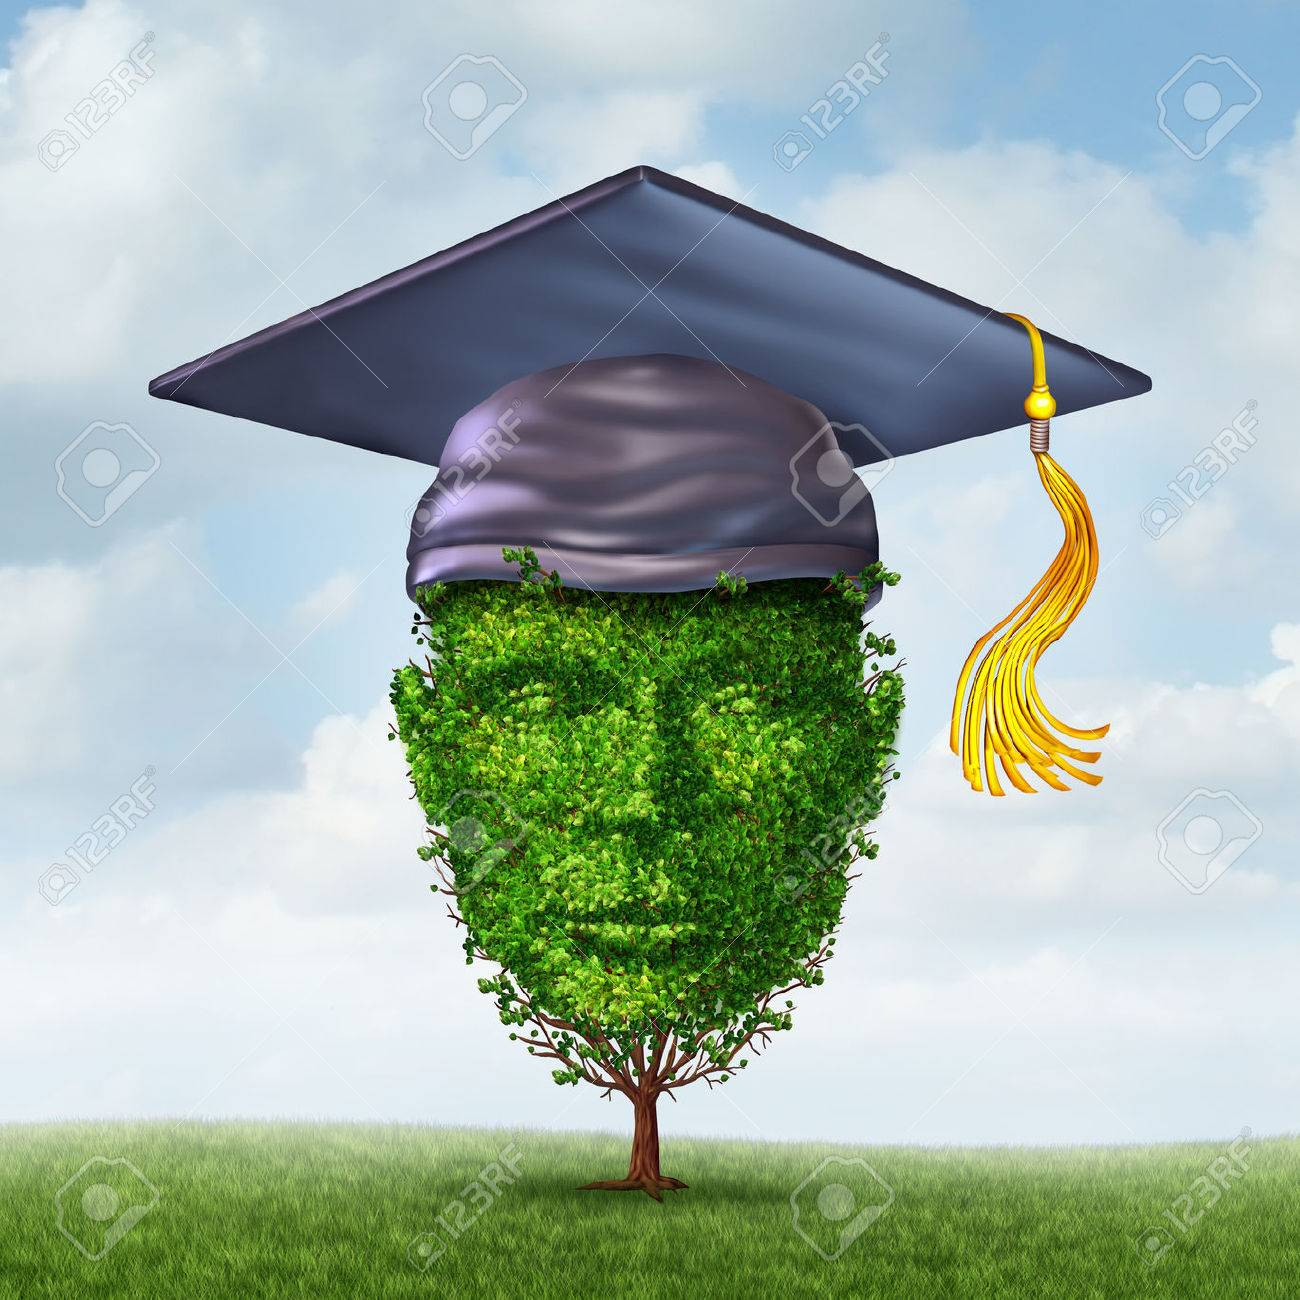 What is the necessity of education for career growth?